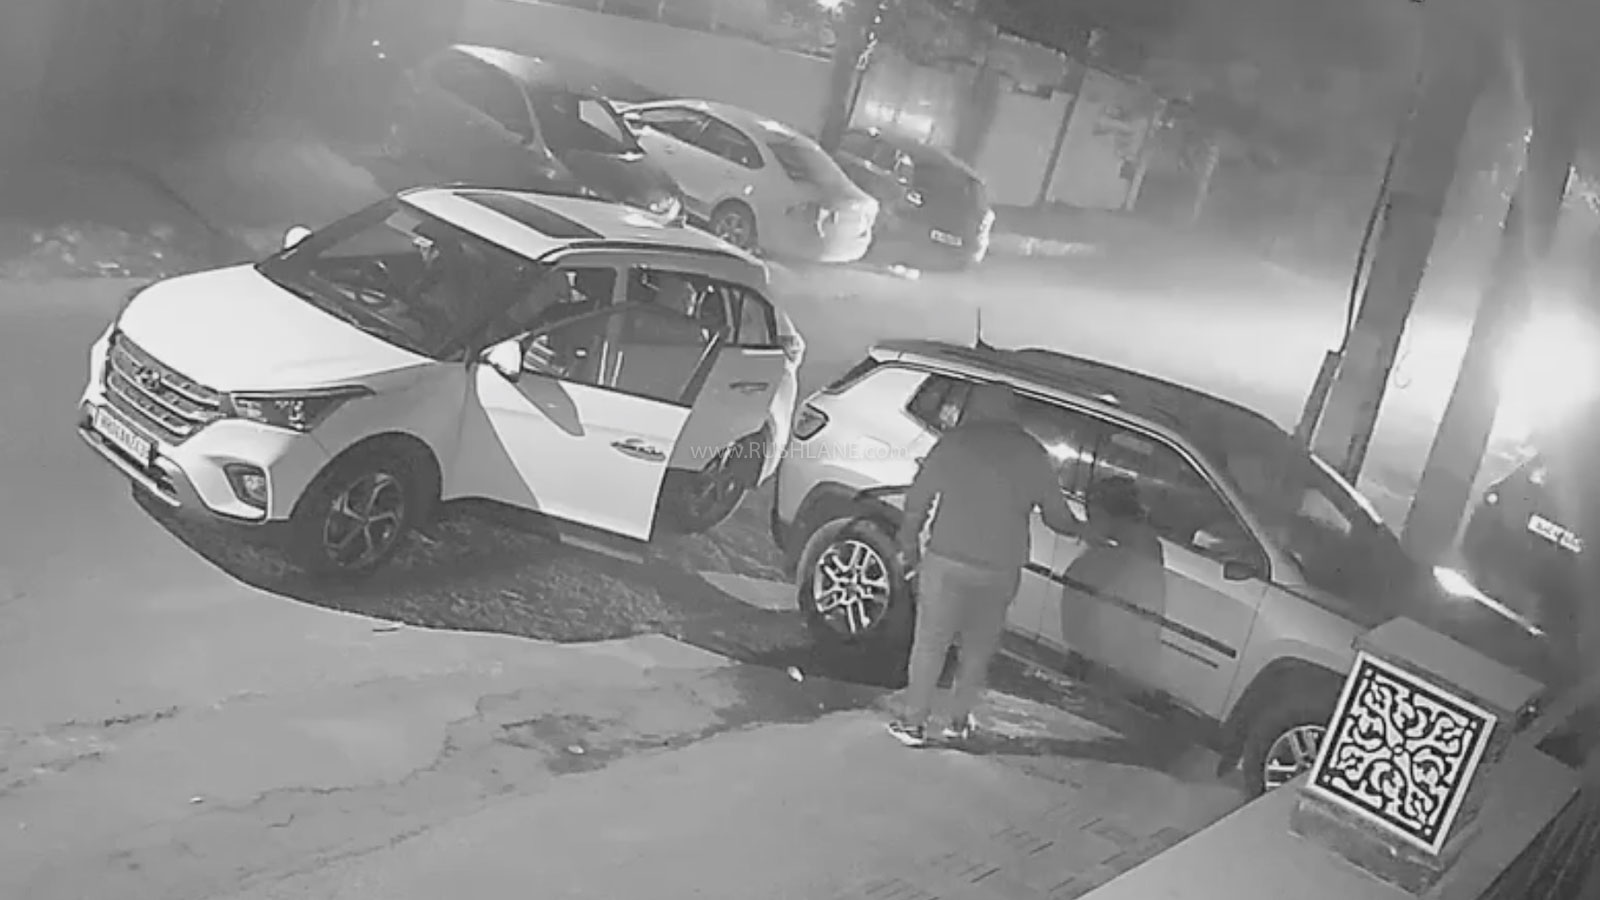 Thieves In Hyundai Creta Steal Jeep Compass Parked On Roadside - CCTV Footage - RushLane